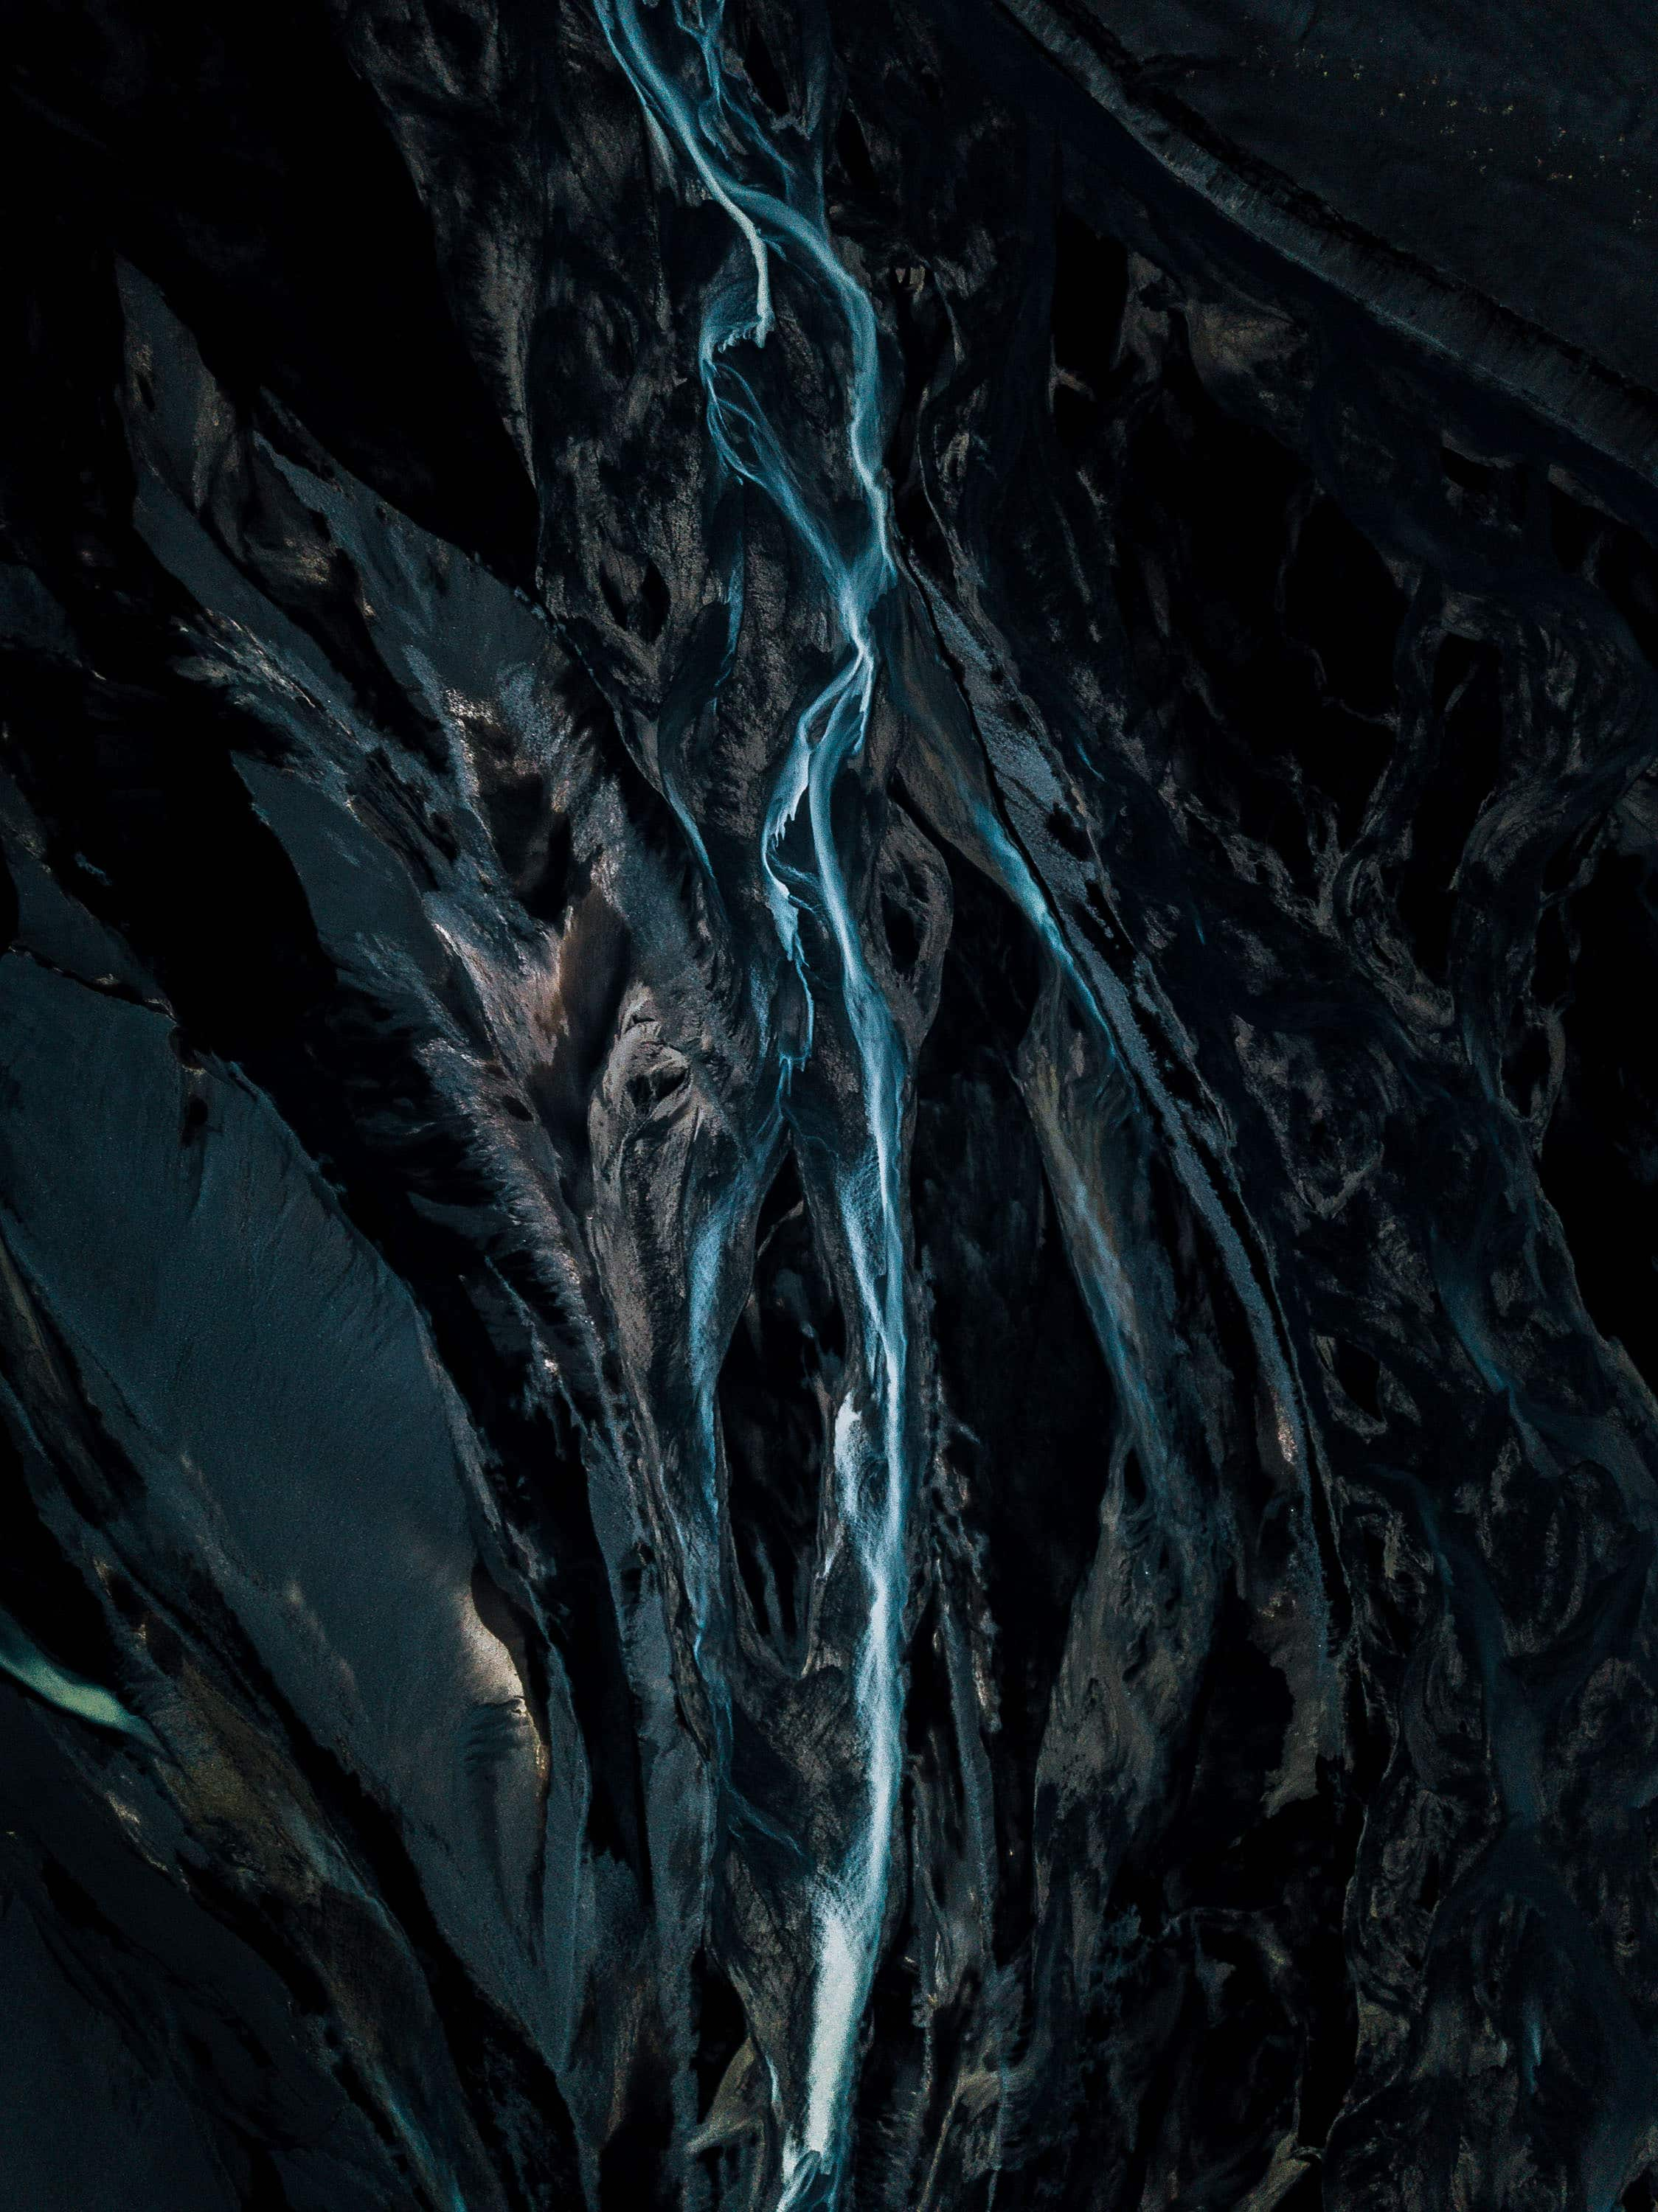 Flow shows different states of water be it solid, flowing or as a cloud. Captured in the wild Icelandic landscape often with a drone by photographer Michael Schauer